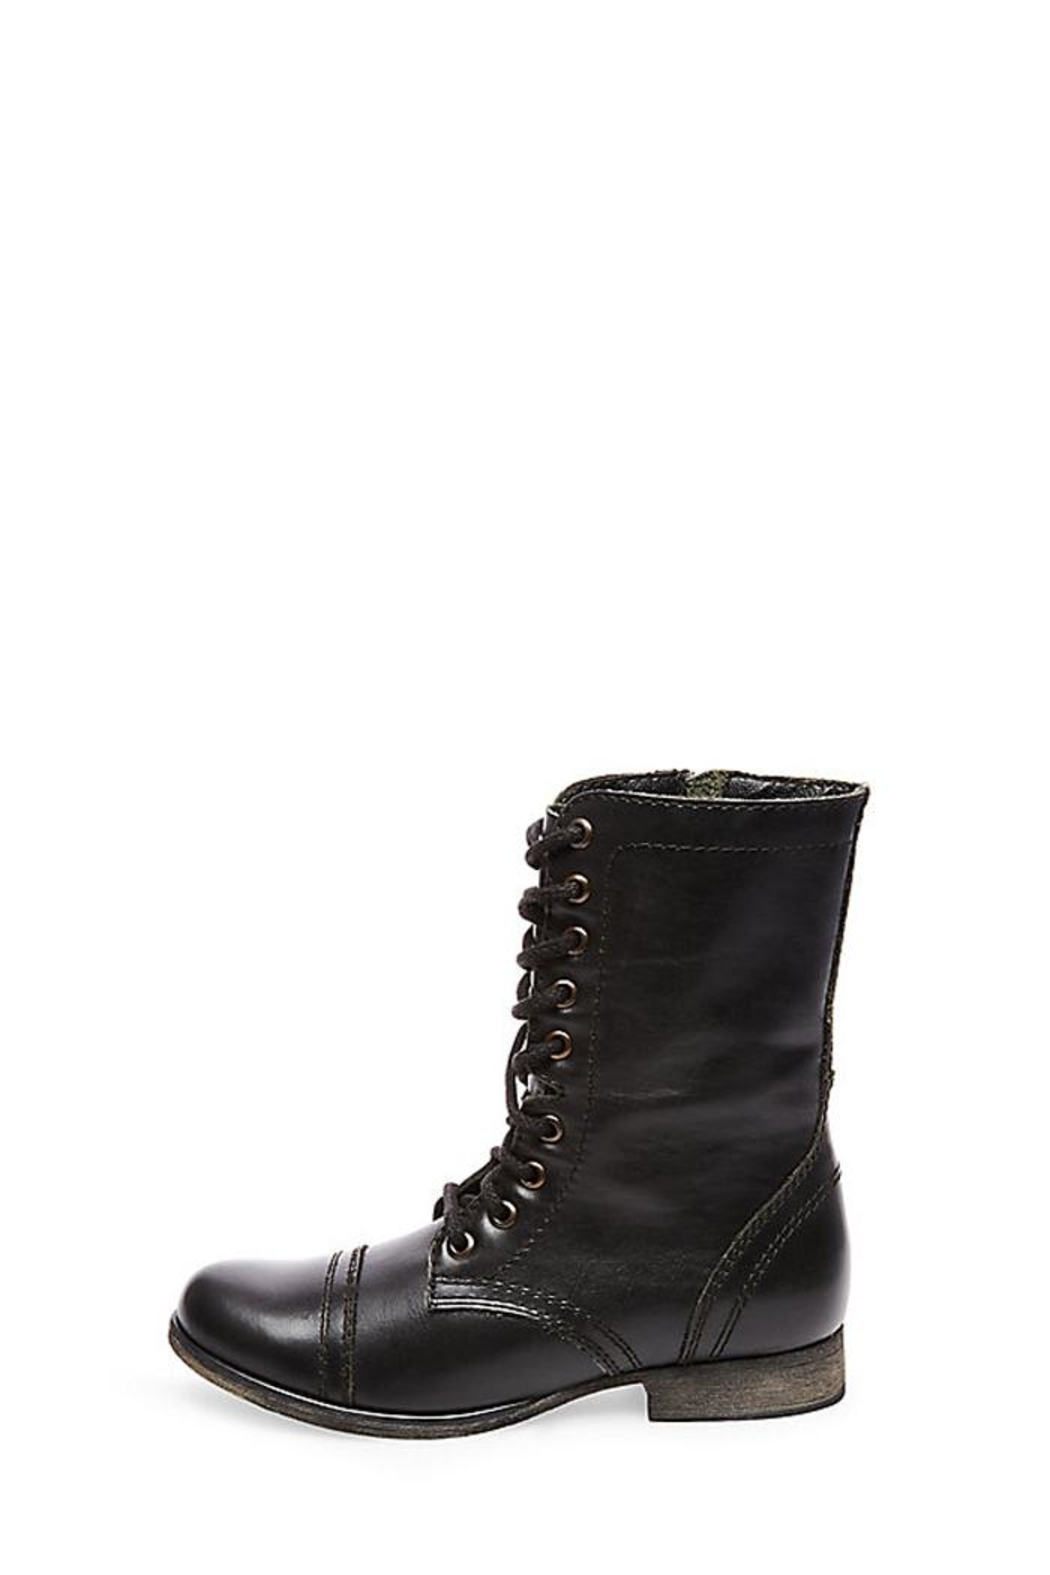 9fac703bf80 Steve Madden Troopa Boot from New York by Luna — Shoptiques